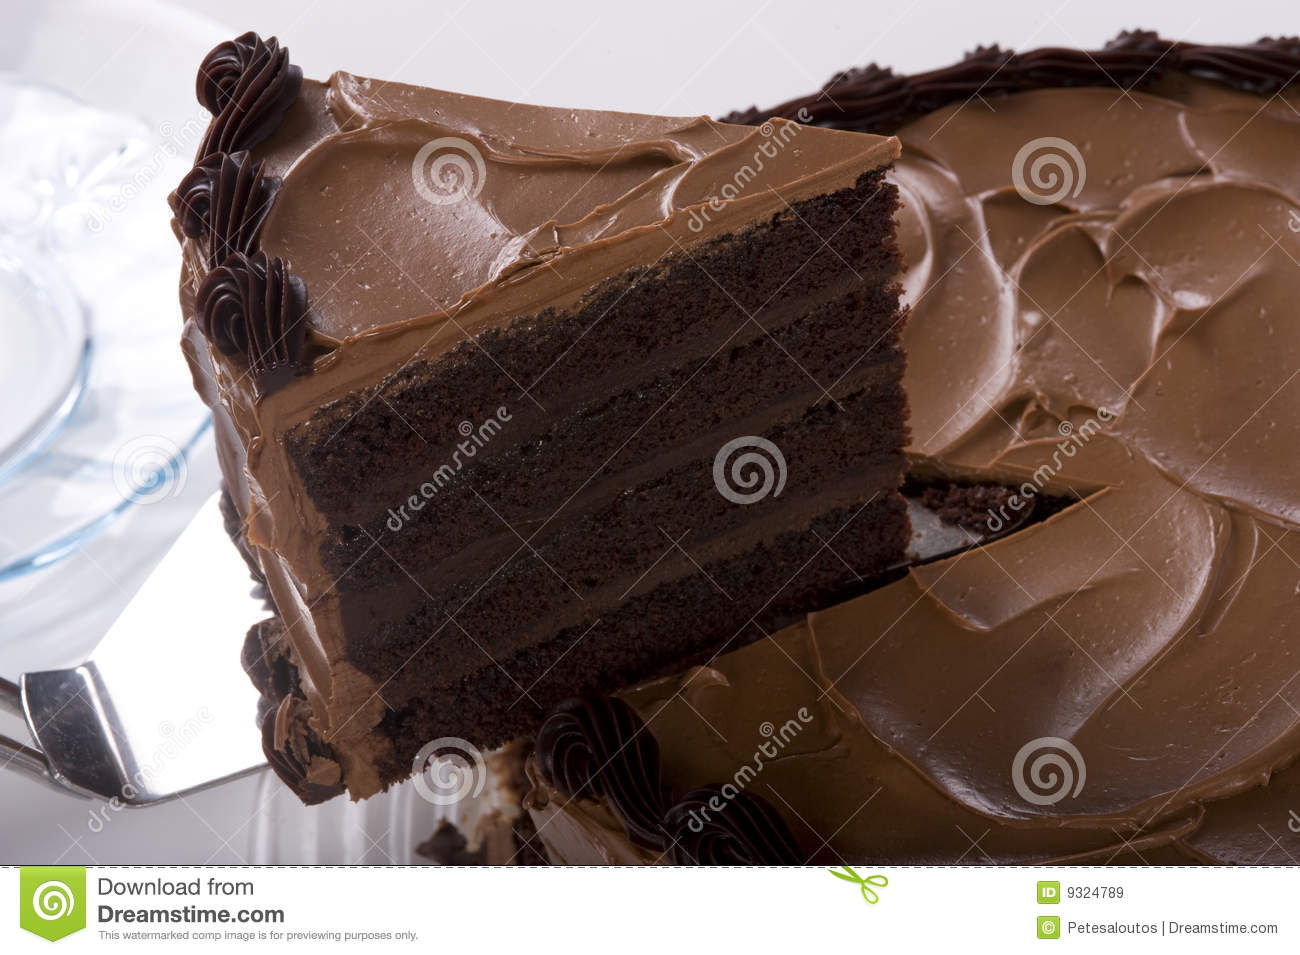 Chocolate Cake being sliced